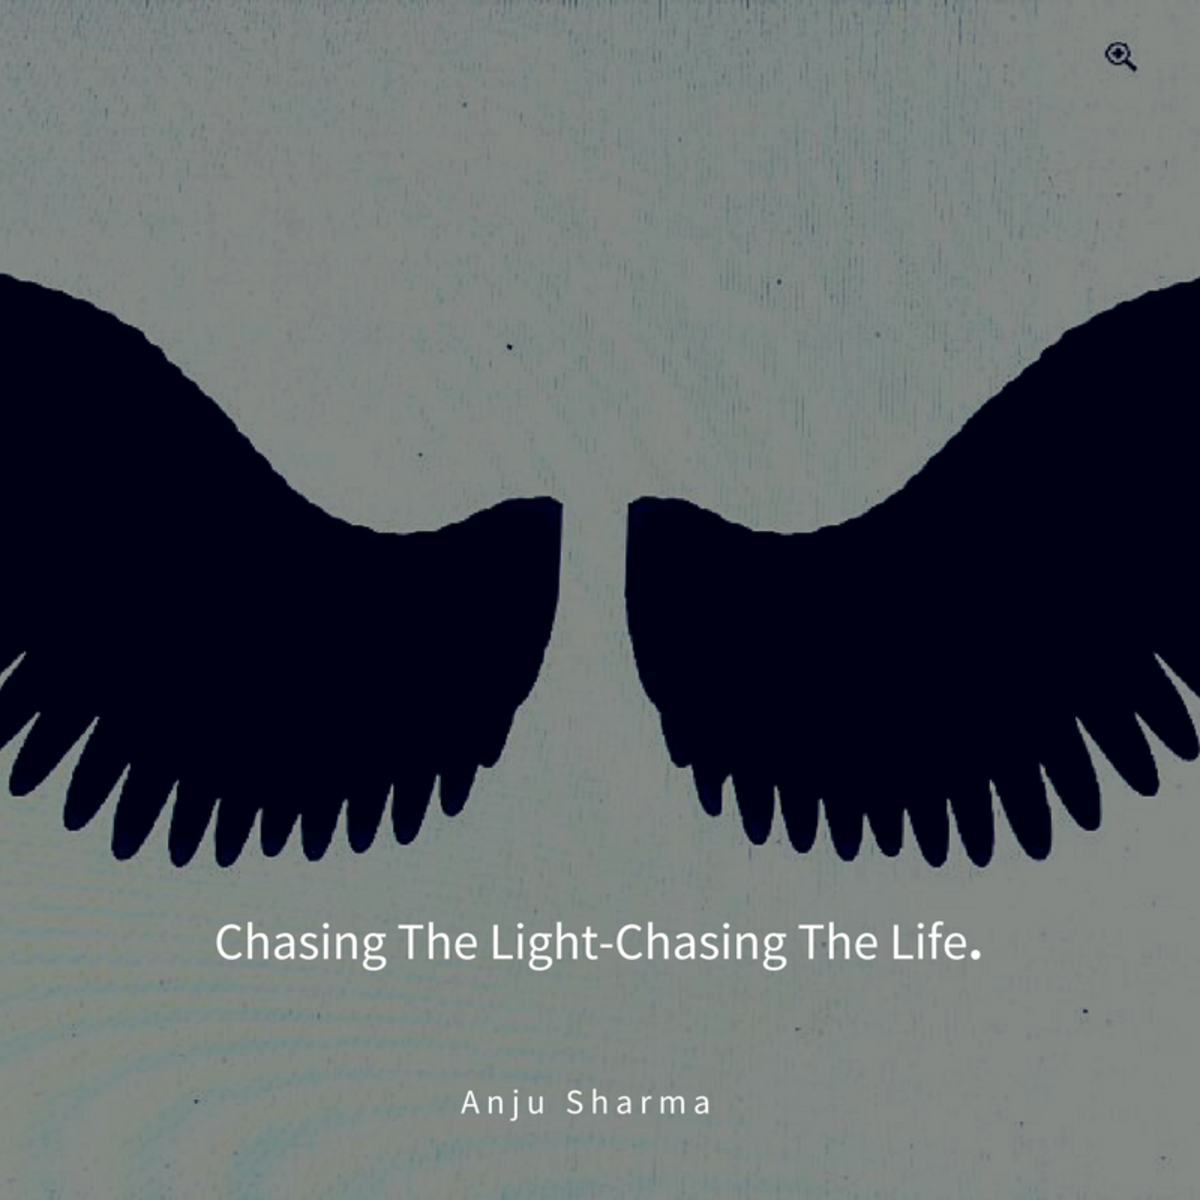 Chasing The Light-Chasing The Life.